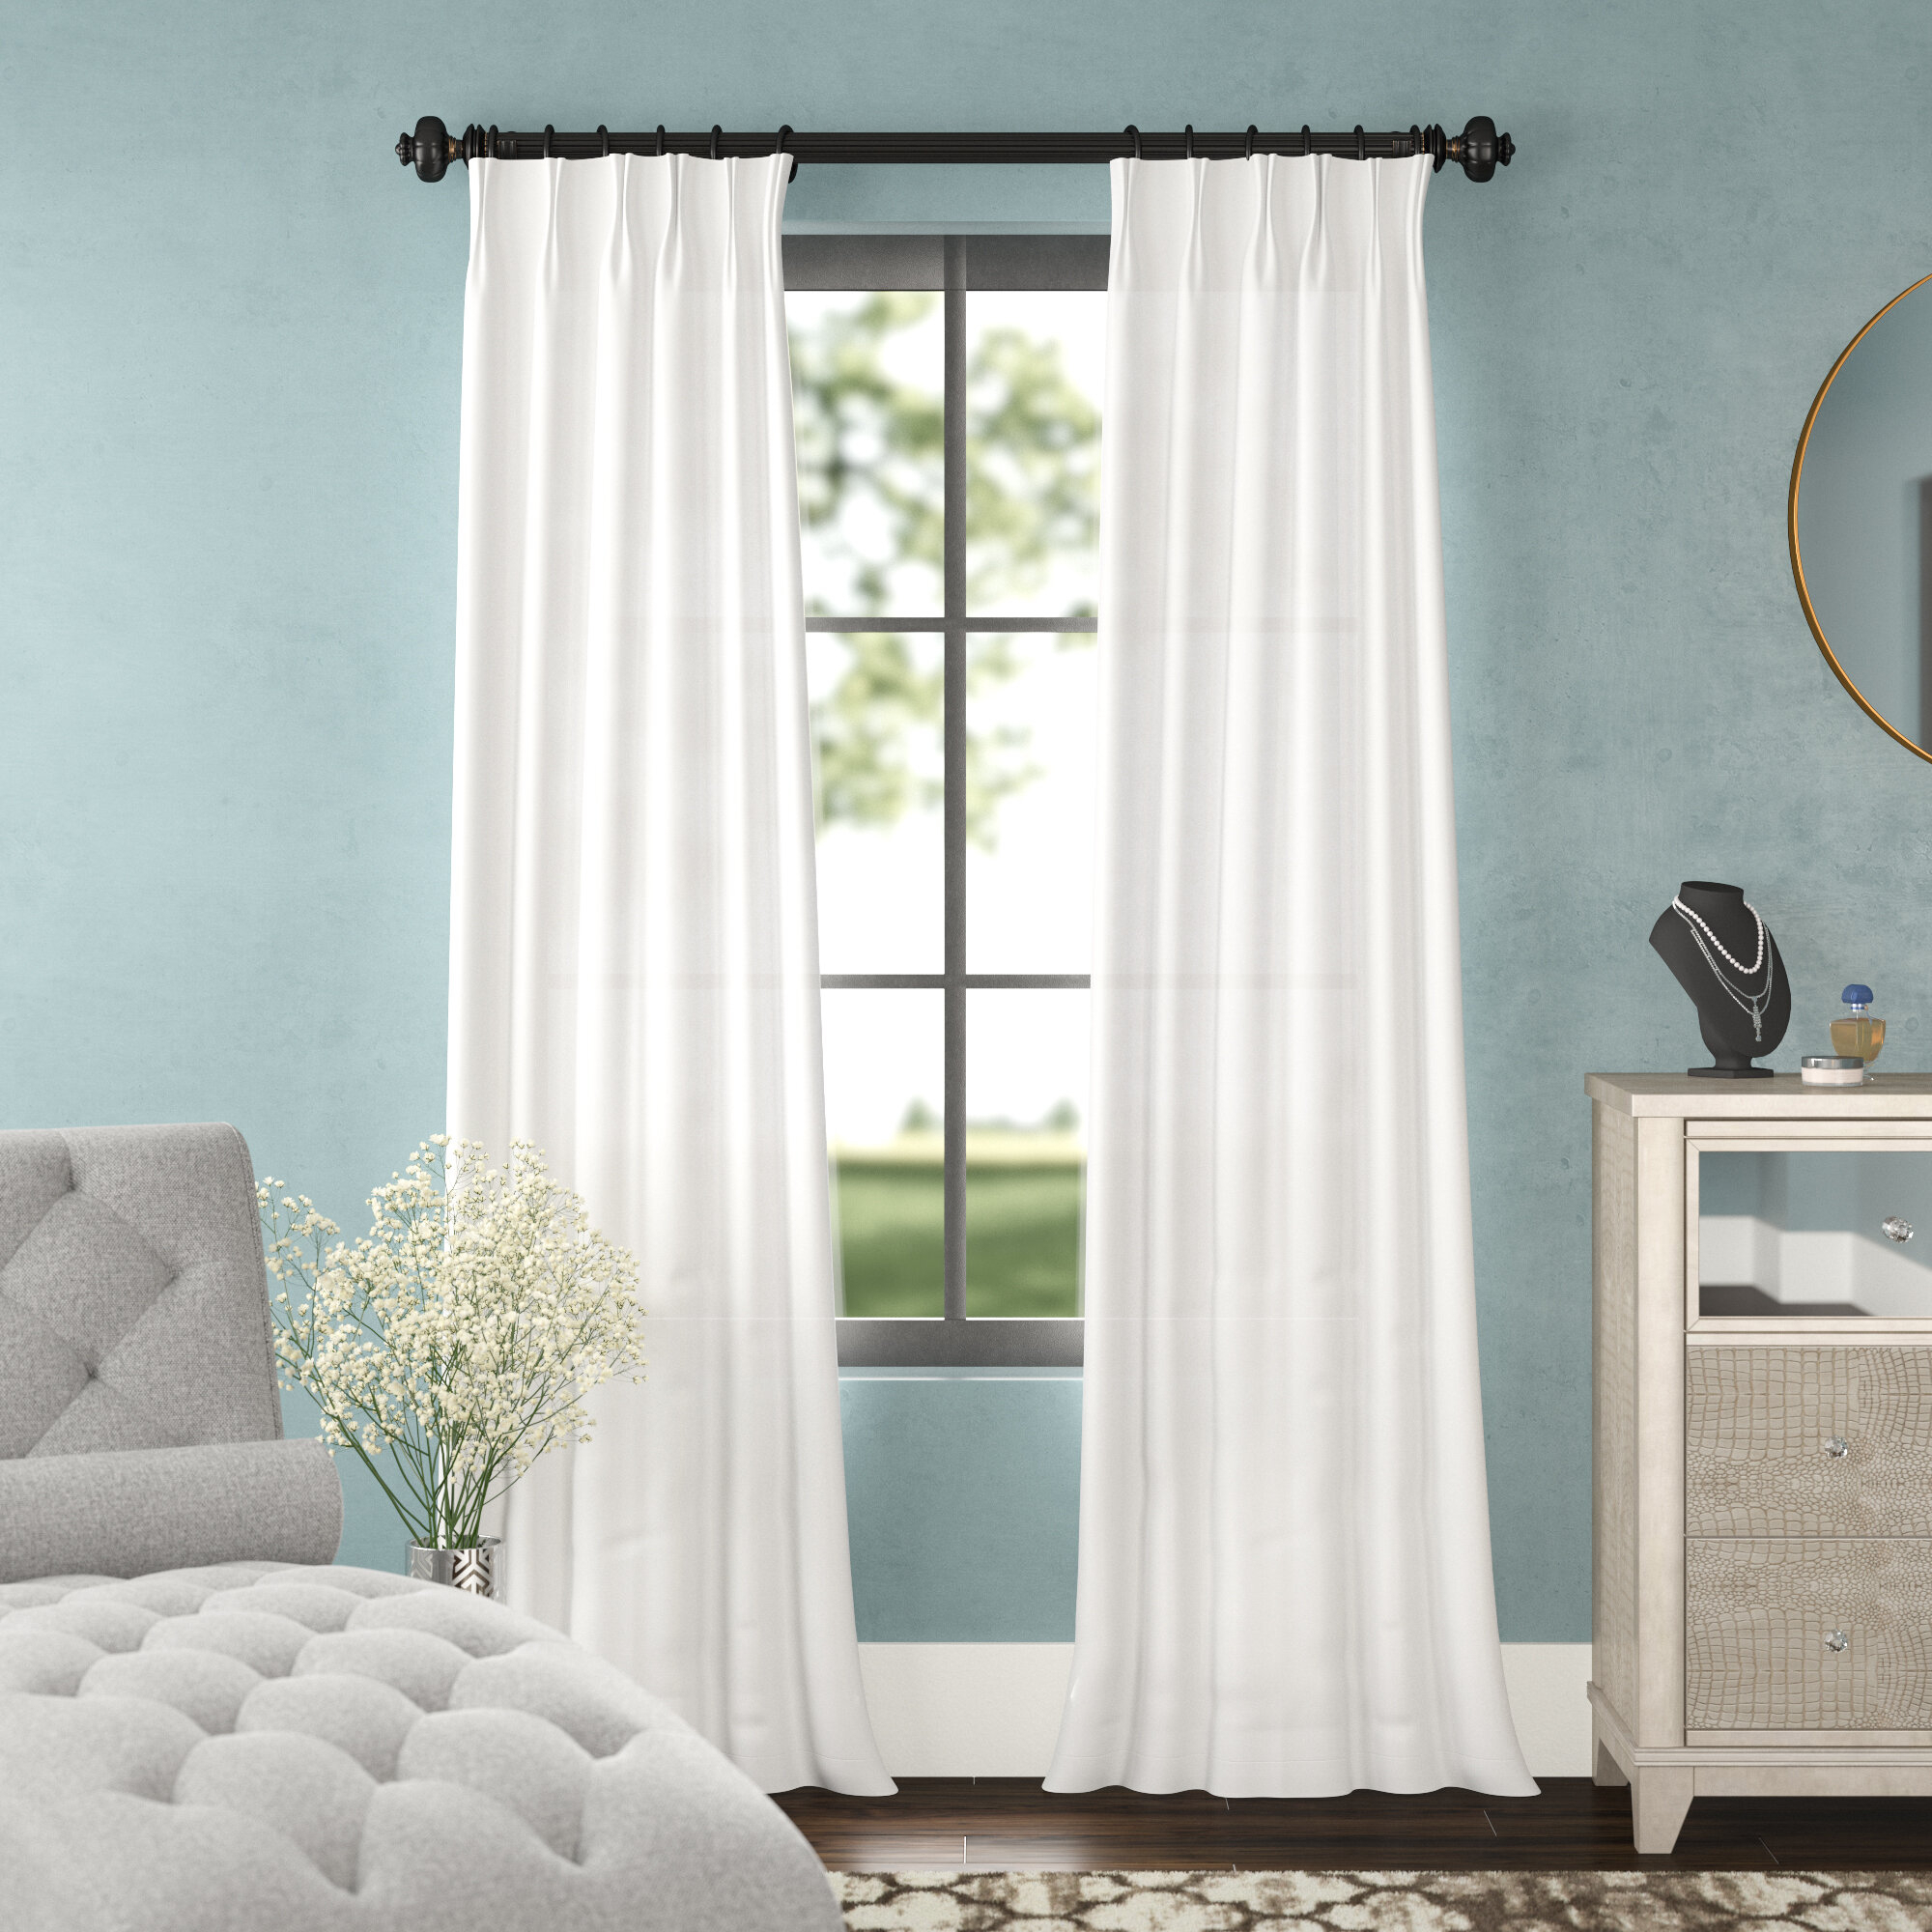 Forbell Solid Blackout Vintage Textured Faux Dupioni Thermal Pinch Pleat Single Curtain Panel Within Storm Grey Vintage Faux Textured Dupioni Single Silk Curtain Panels (View 22 of 30)